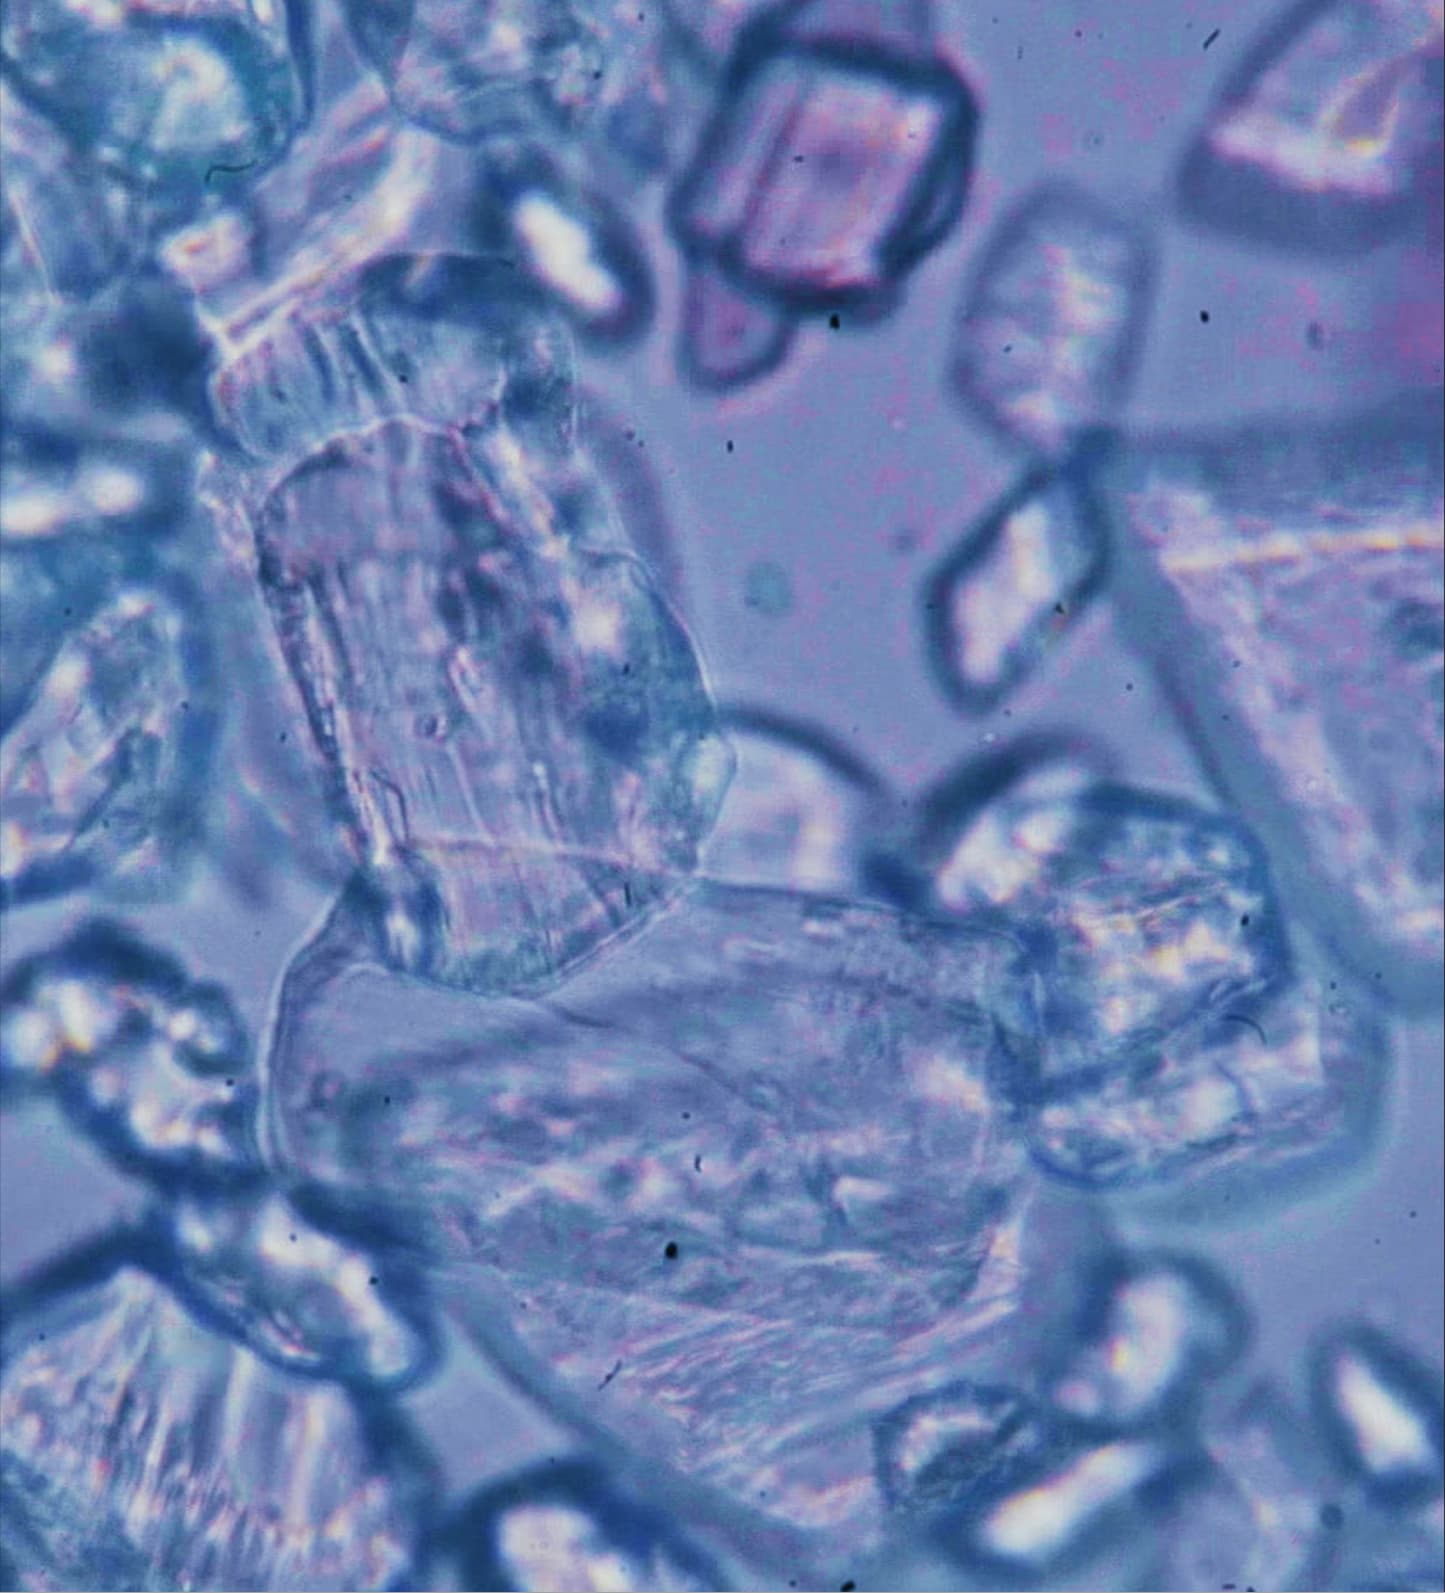 Crystals under a microscope